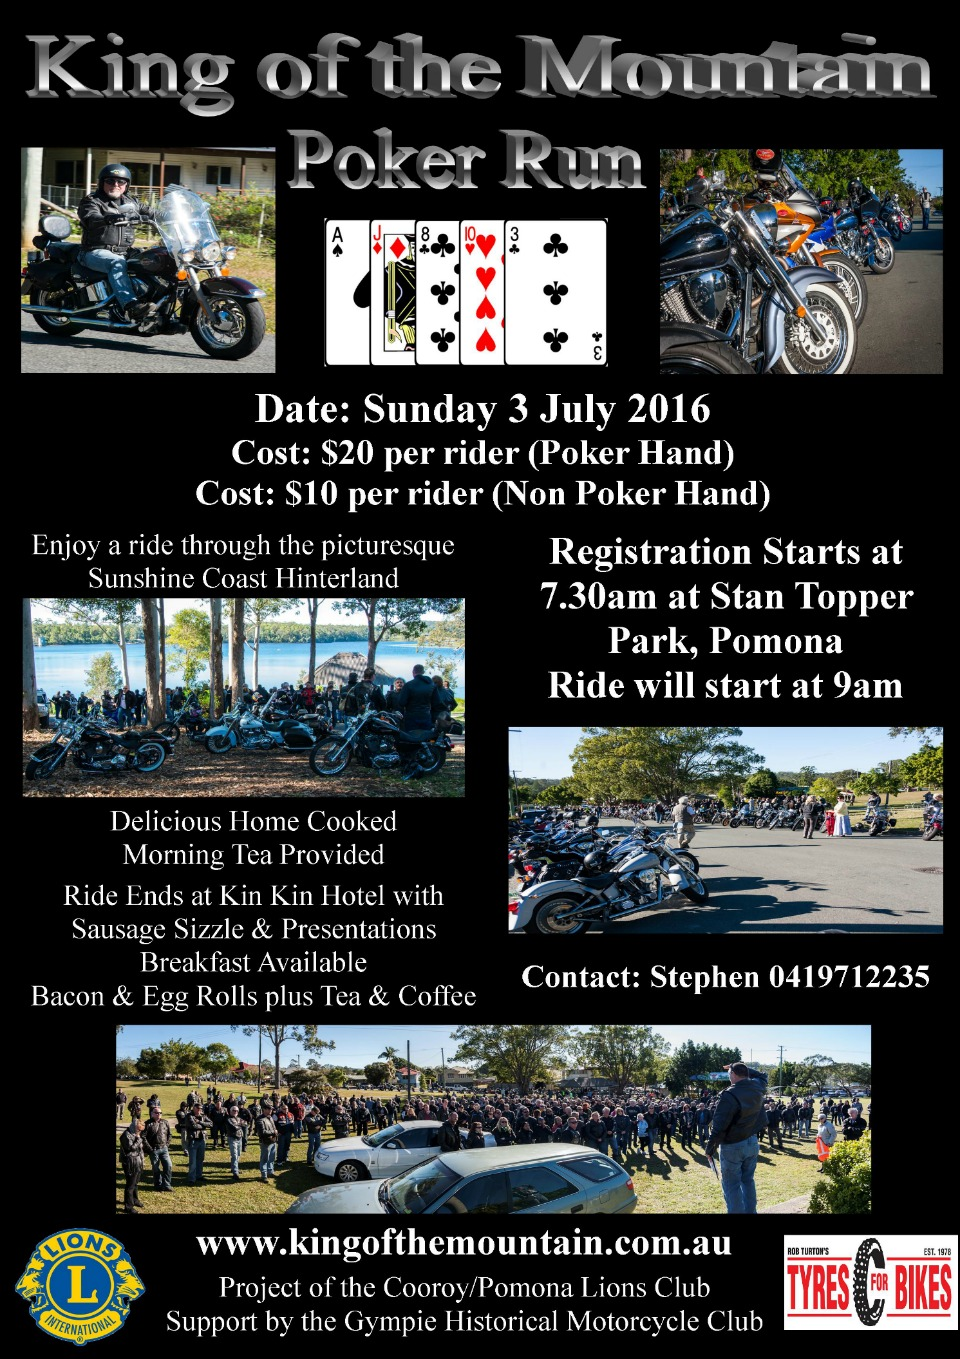 Pomona King of the Mountain Poker Run